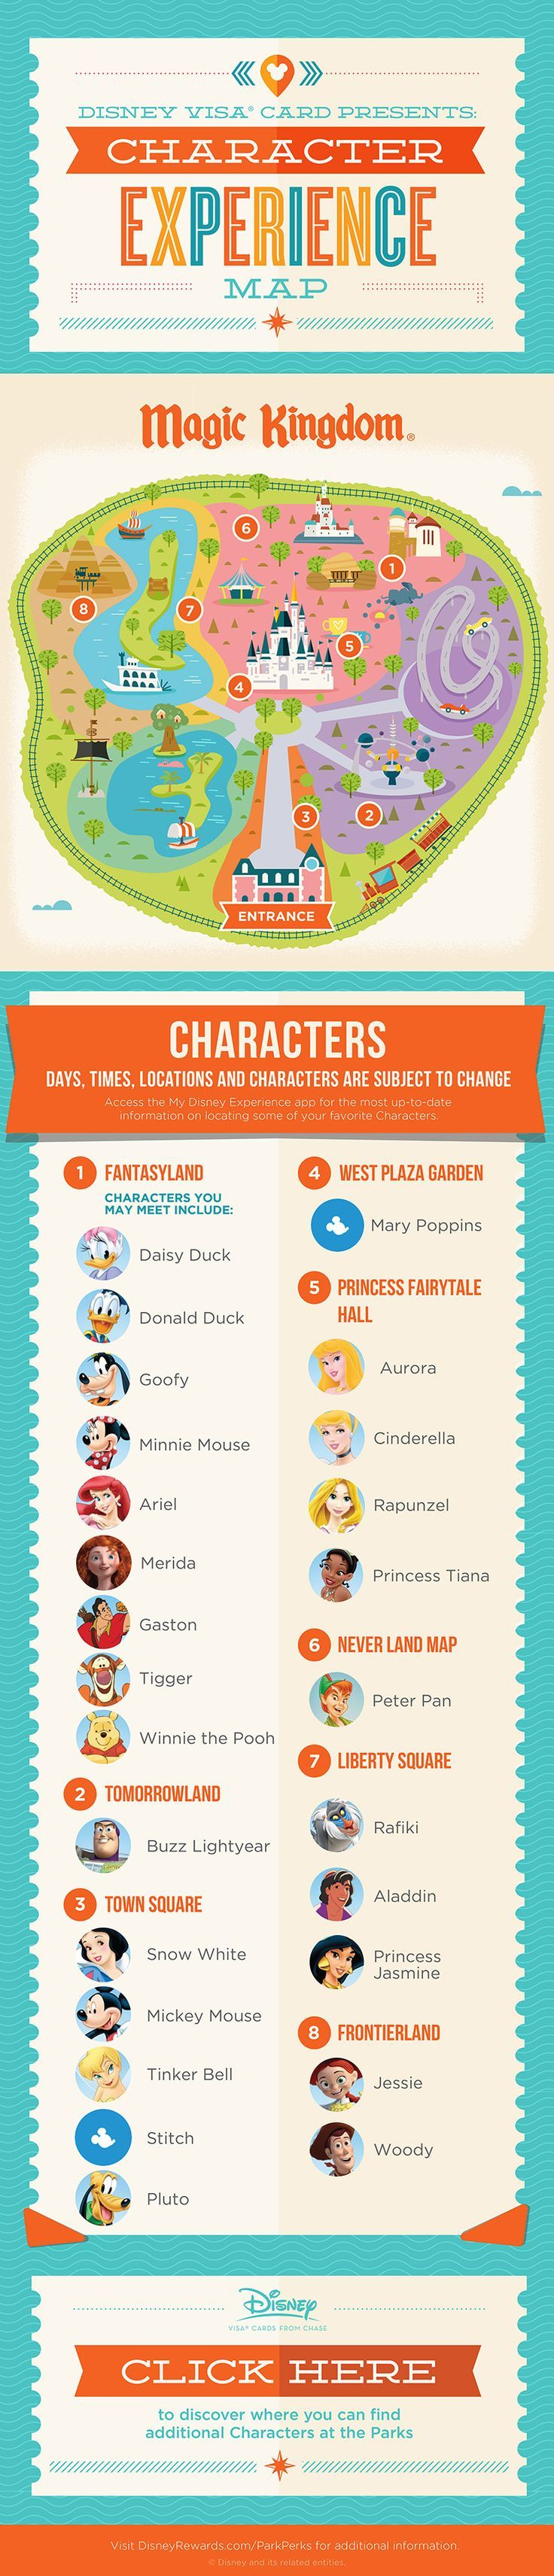 Magic Kingdom® Park Character Experience Guide Disney